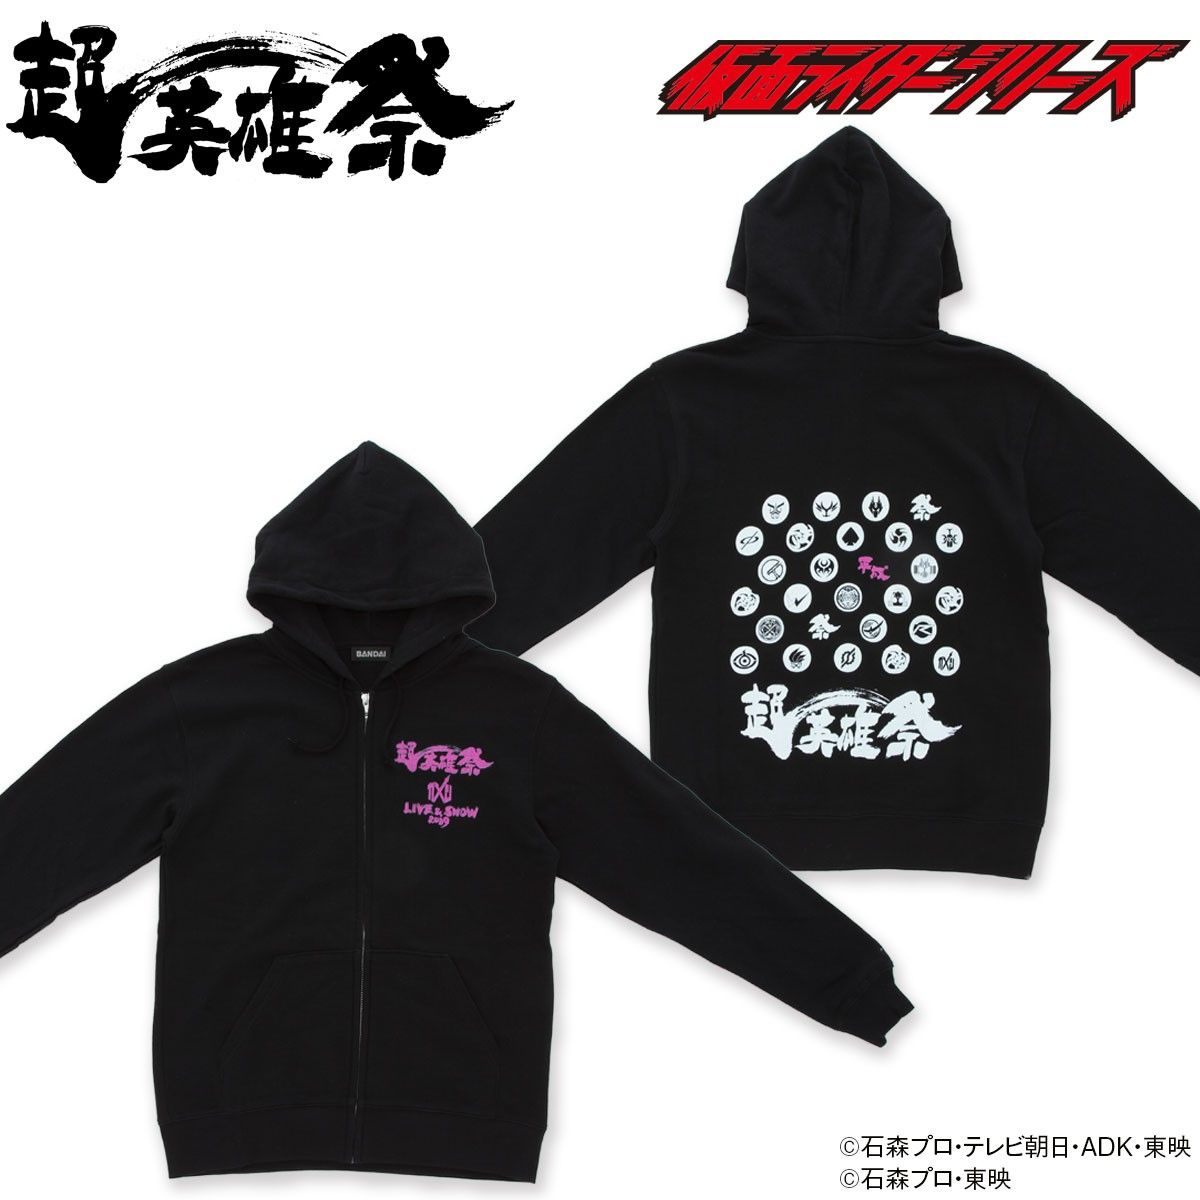 Super Hero Festival 2019 HEISEI KAMEN RIDER 20 works celebration hoodie